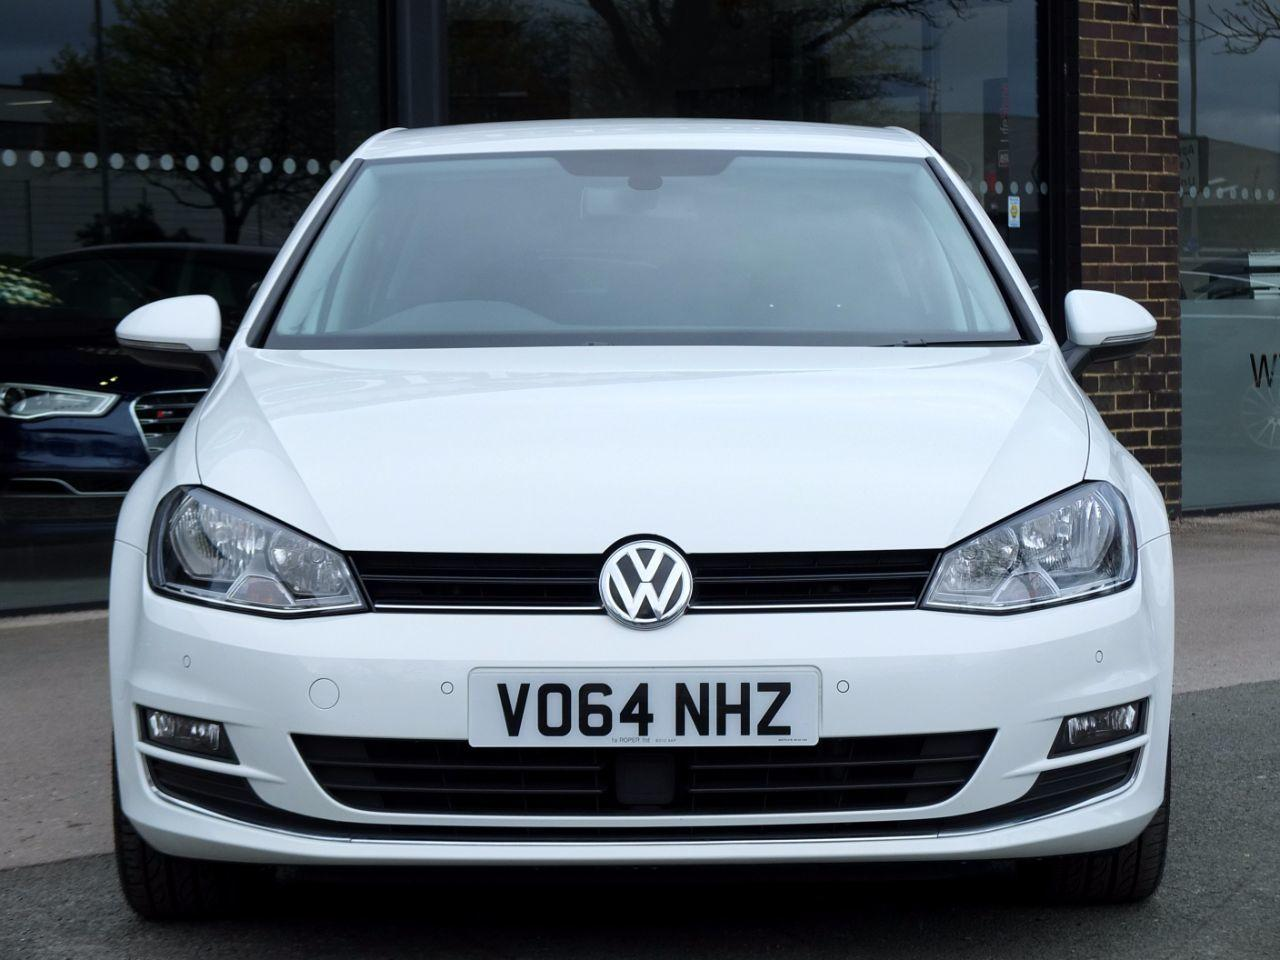 Volkswagen Golf 2.0 TDI GT 150ps 5 door DSG Hatchback Diesel Pure White